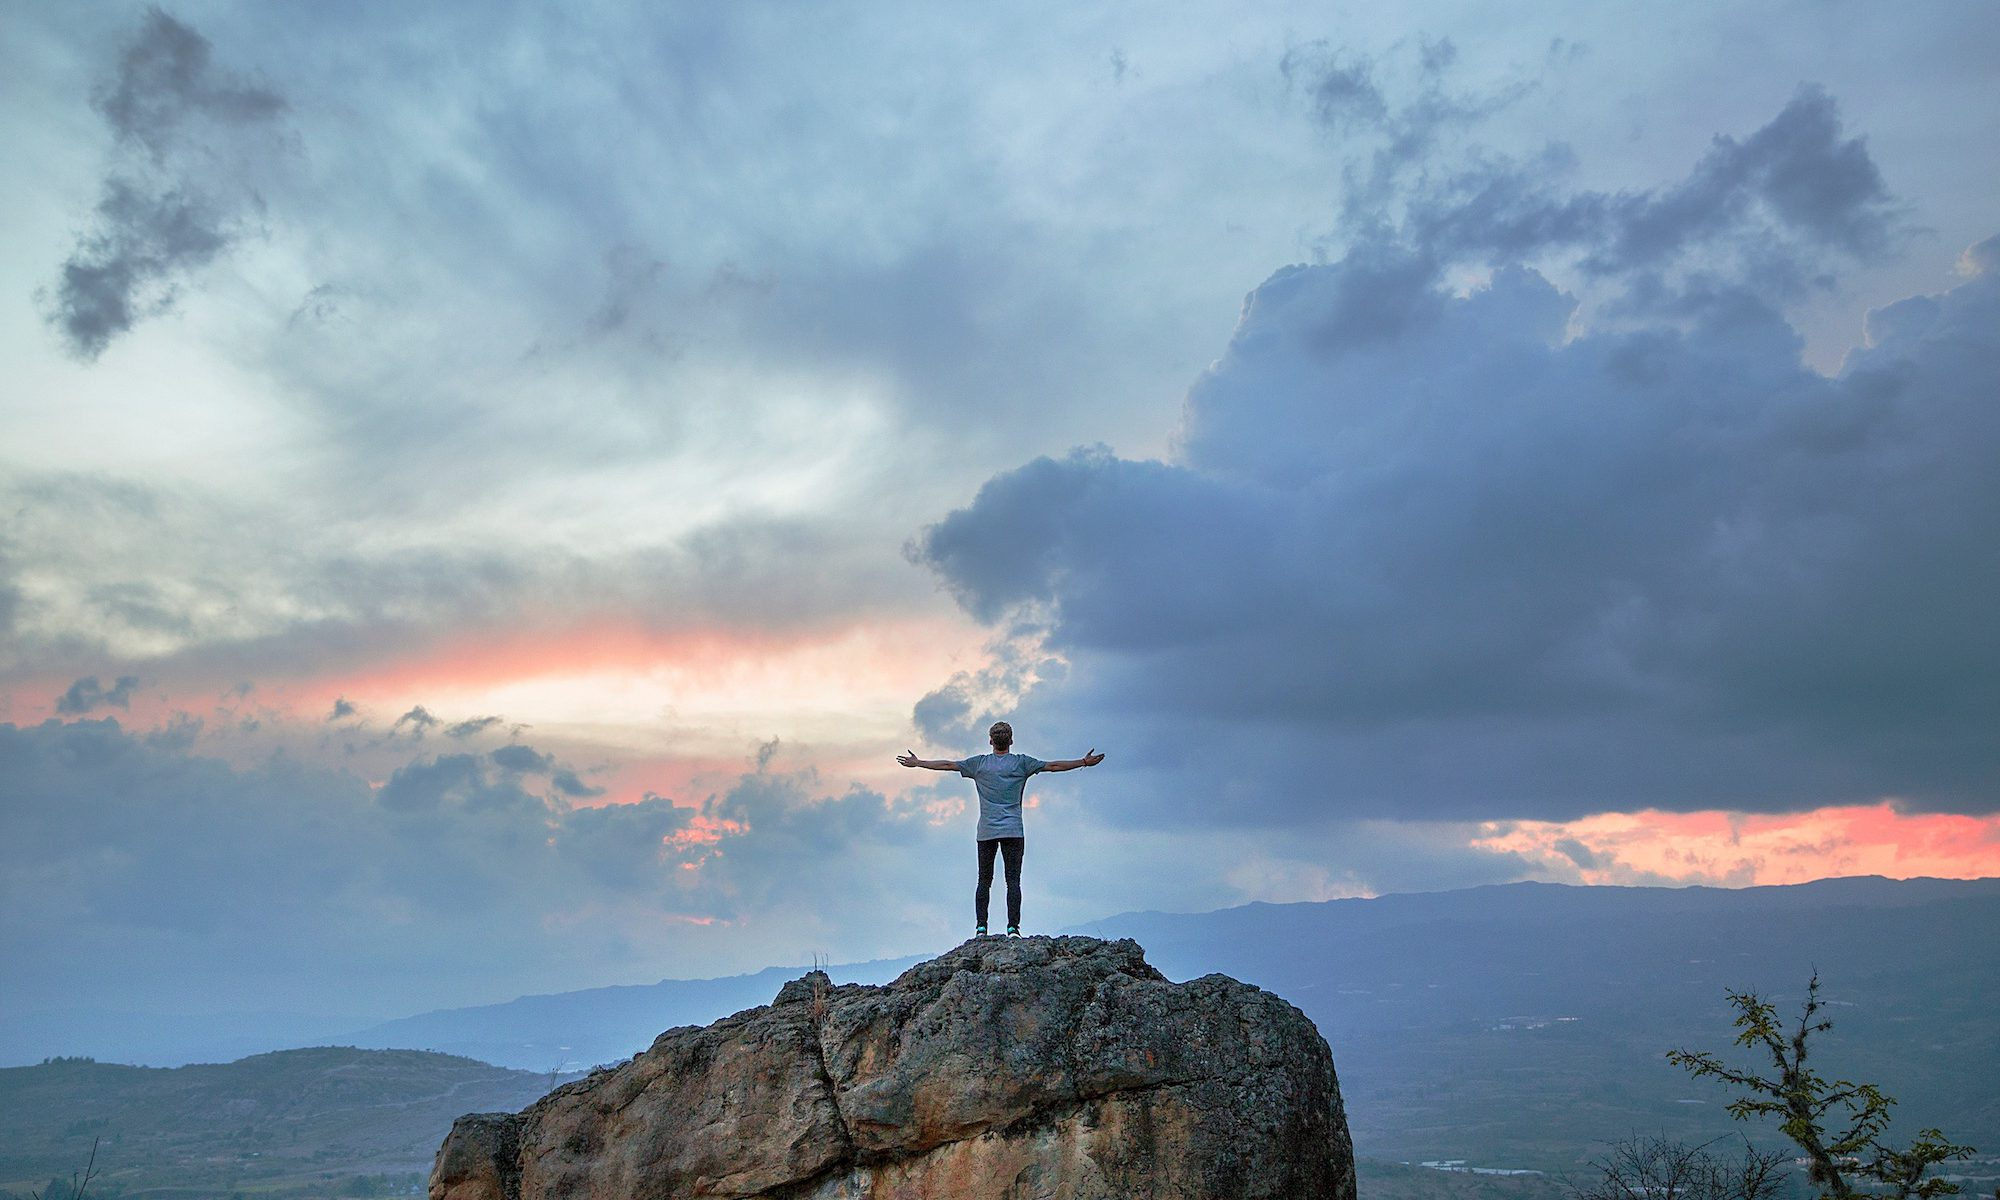 Man standing on top of a rock with his back to us, arms open wide towards the sunset